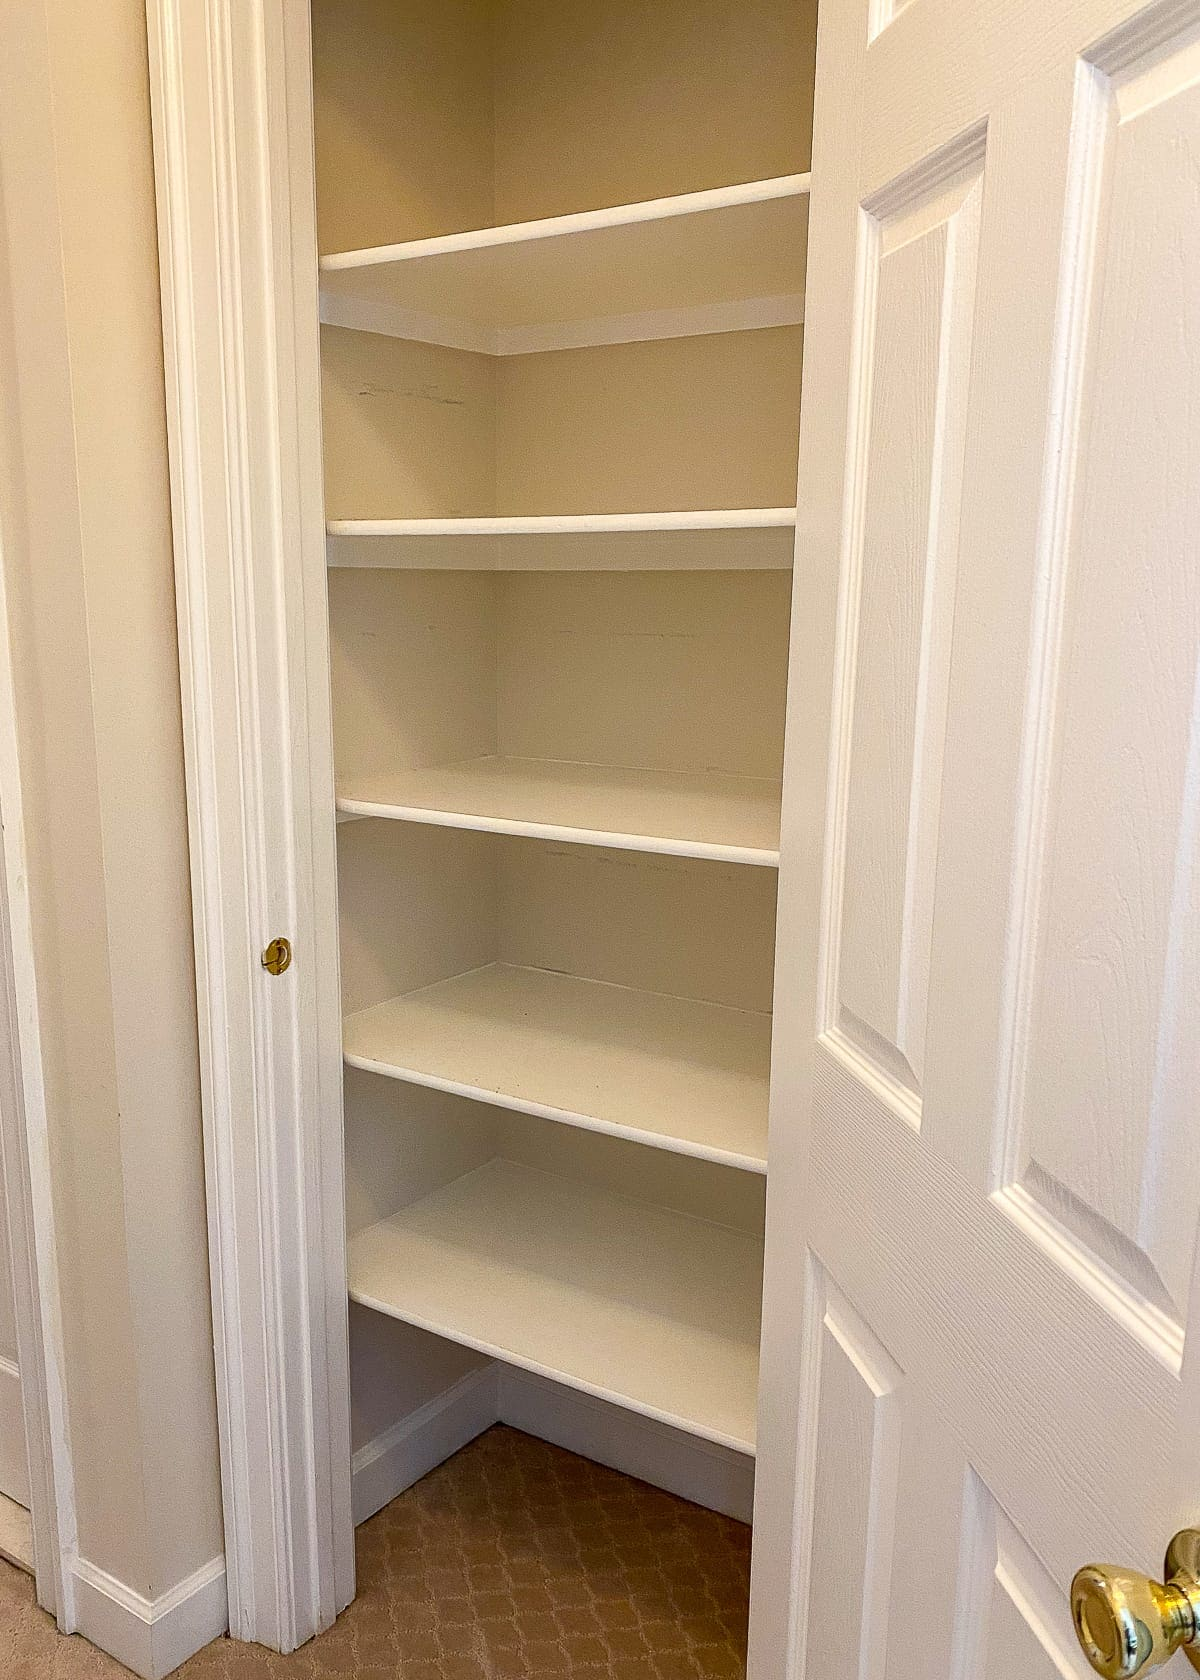 Our Organized Linen Closet (Finally!) - The Homes I Have Made